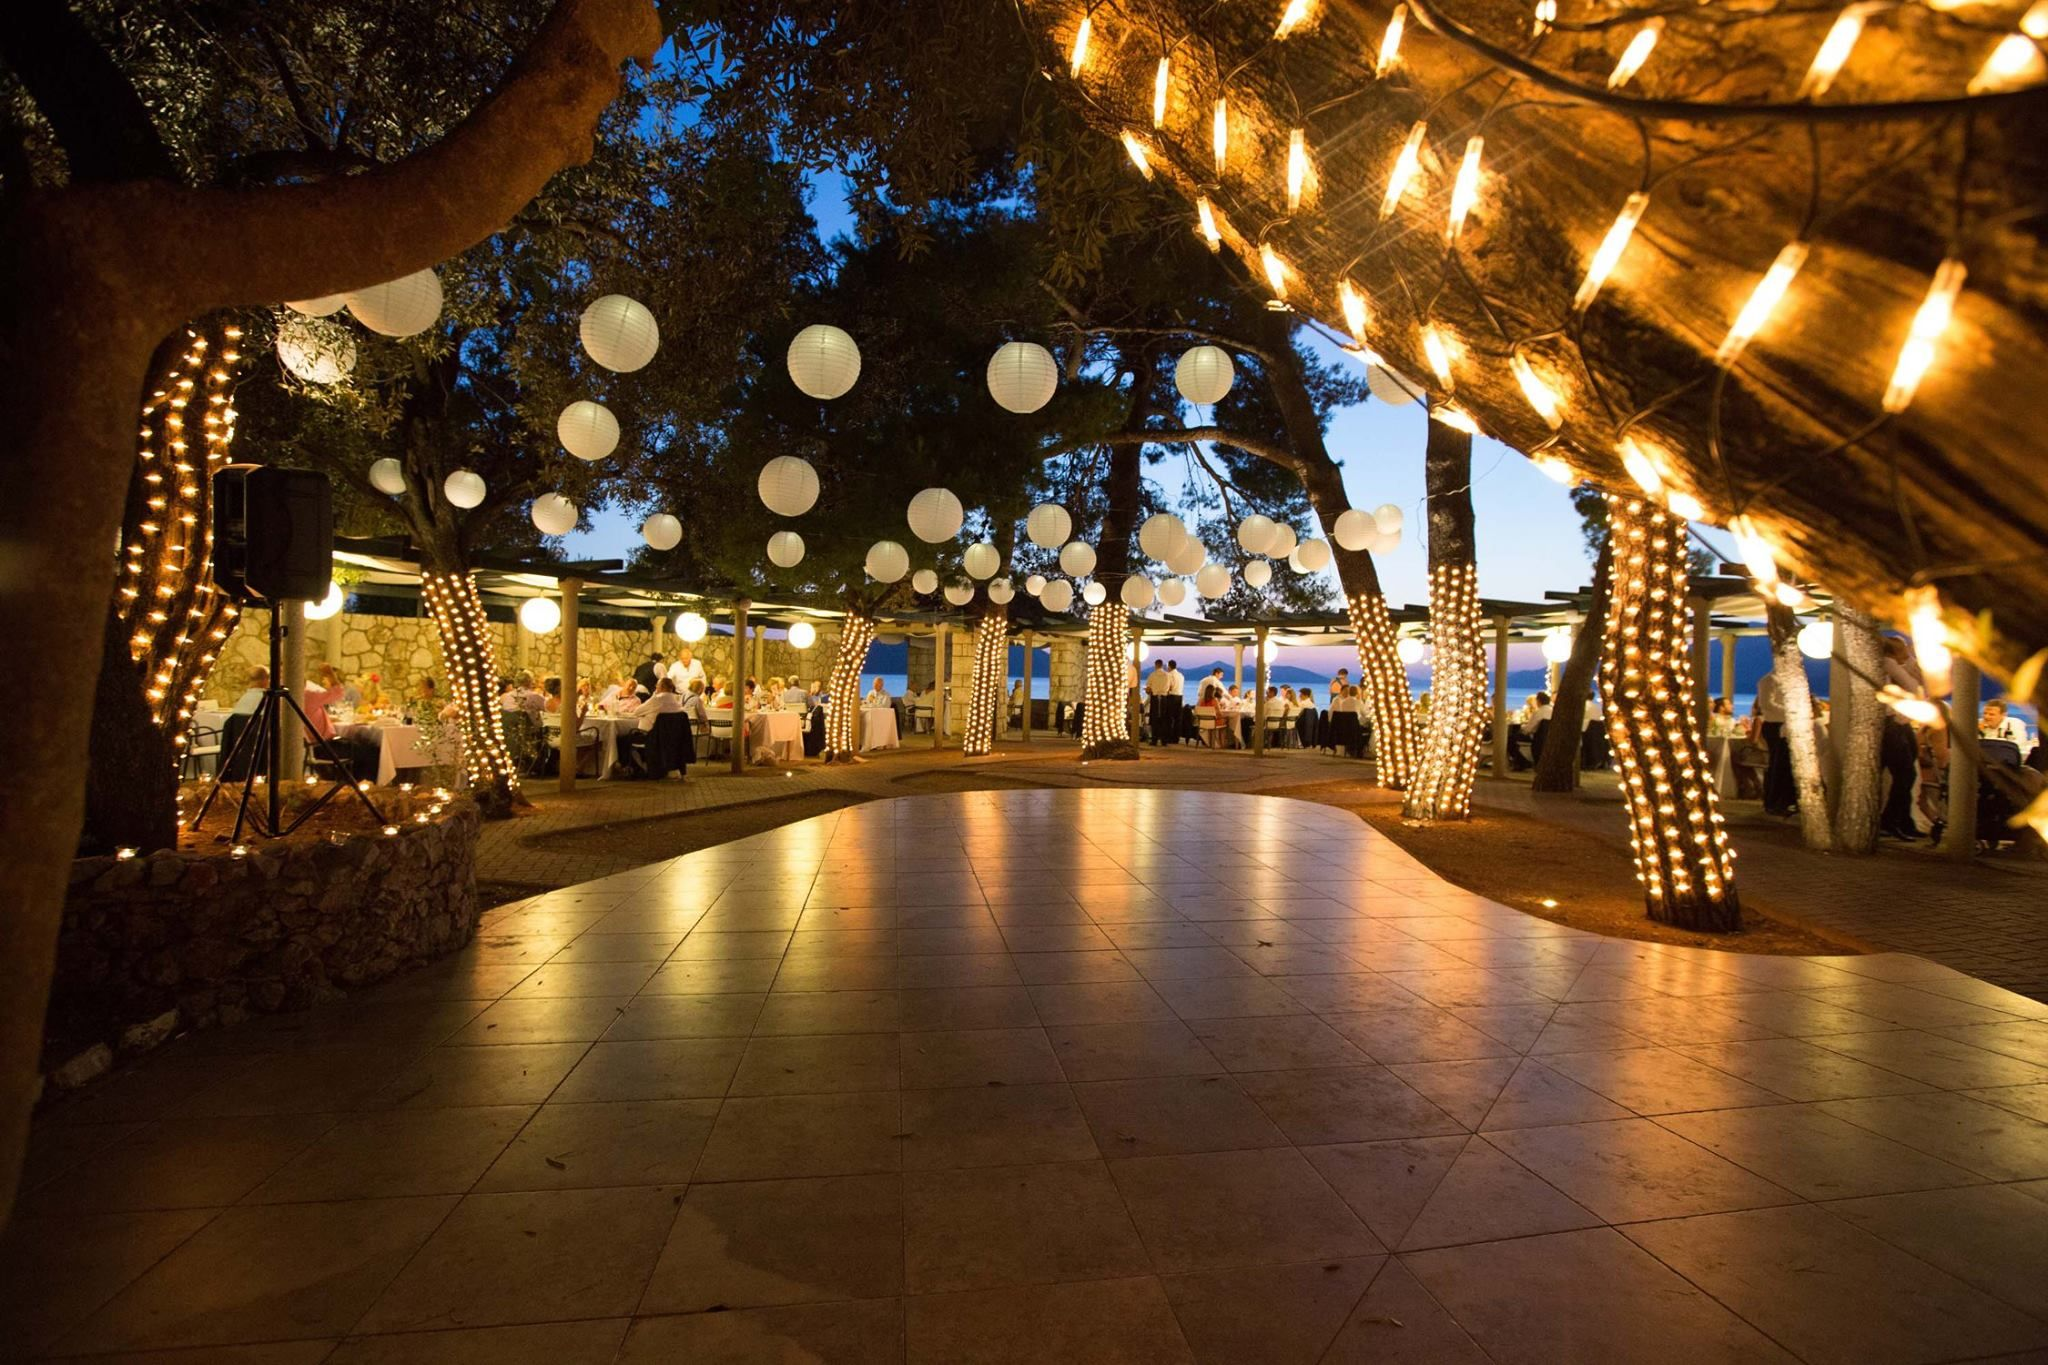 Revelin fortress wedding venues